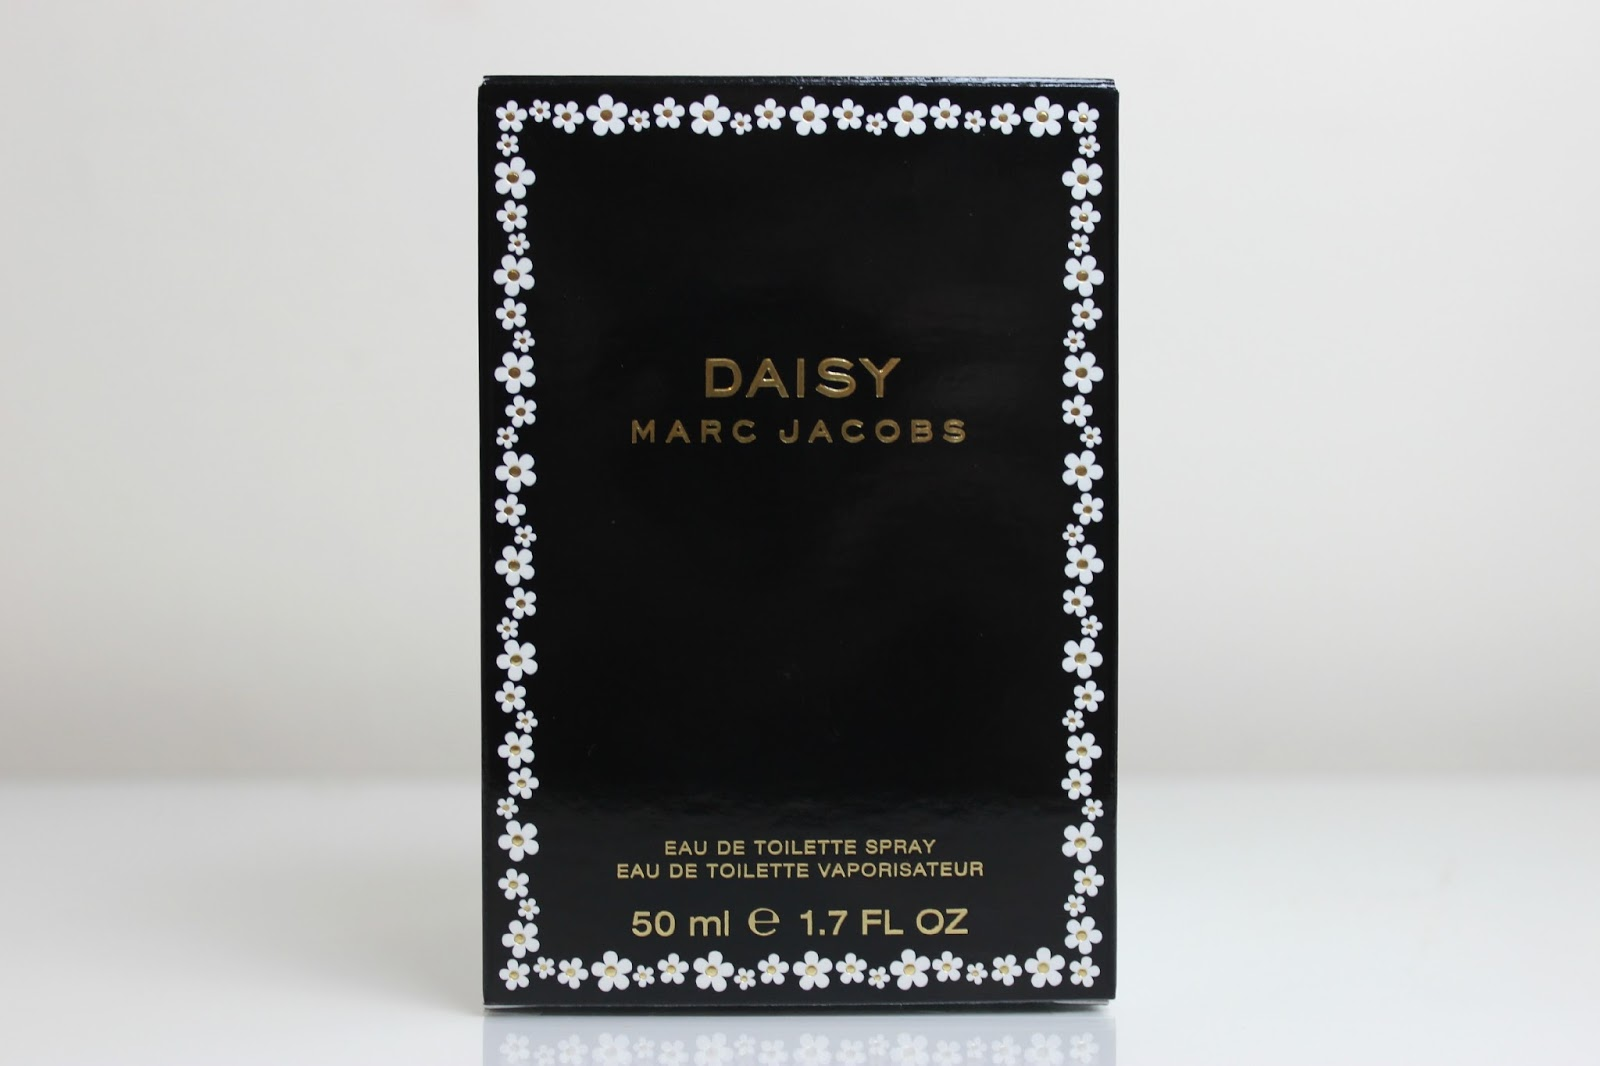 A picture of Marc Jacobs Daisy Eau de Toilette